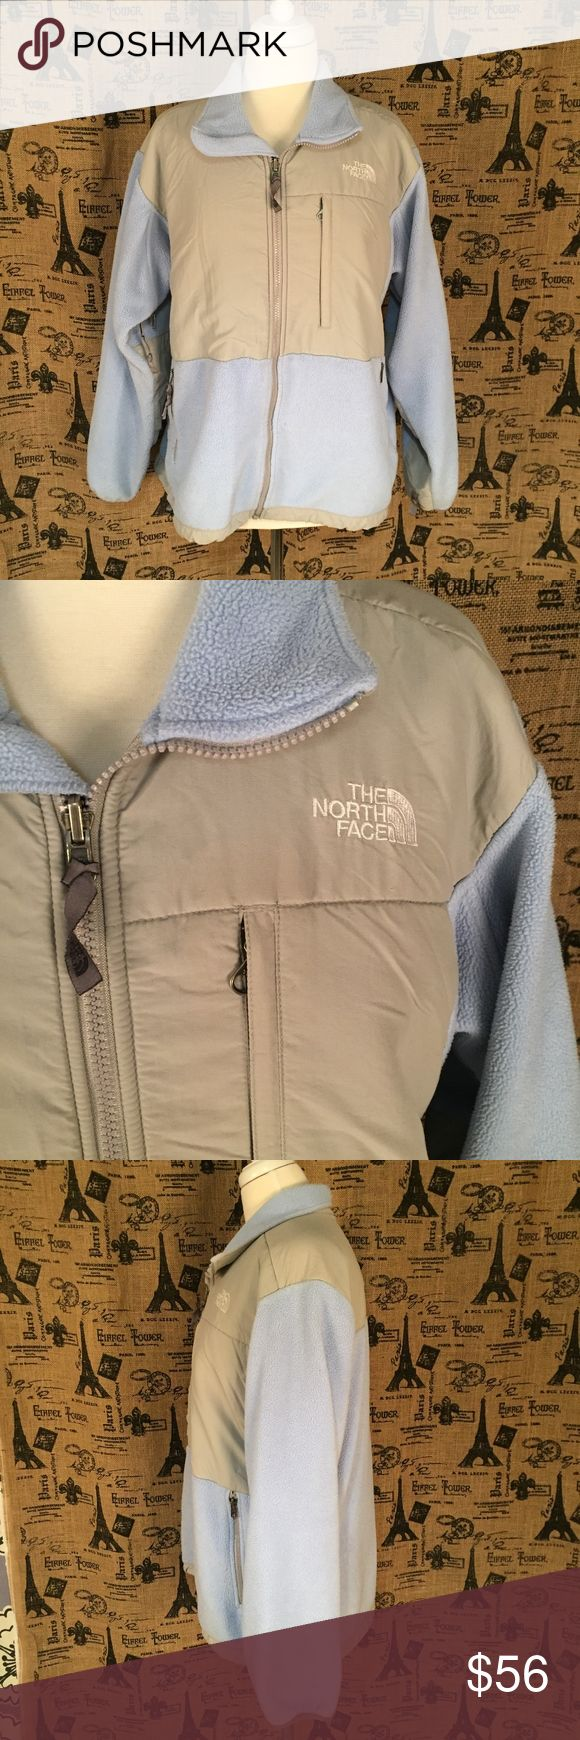 "North Face Blue and Gray Coat Size L Brand: North Face Size: L Description: Classic North Face, warm and light; plenty of zippers, pockets and drawstrings Condition: Good Fabric: Shell A: 100% polyester; Shell B: 100% nylon Bust: 44"" Length: 26"" Item #1648 Bundle Discount Available! Reasonable offers welcome! No trades please.. Thanks for stopping by!! #Poshmark #Poshmarkapp #Poshmarkcloset The North Face Jackets & Coats"